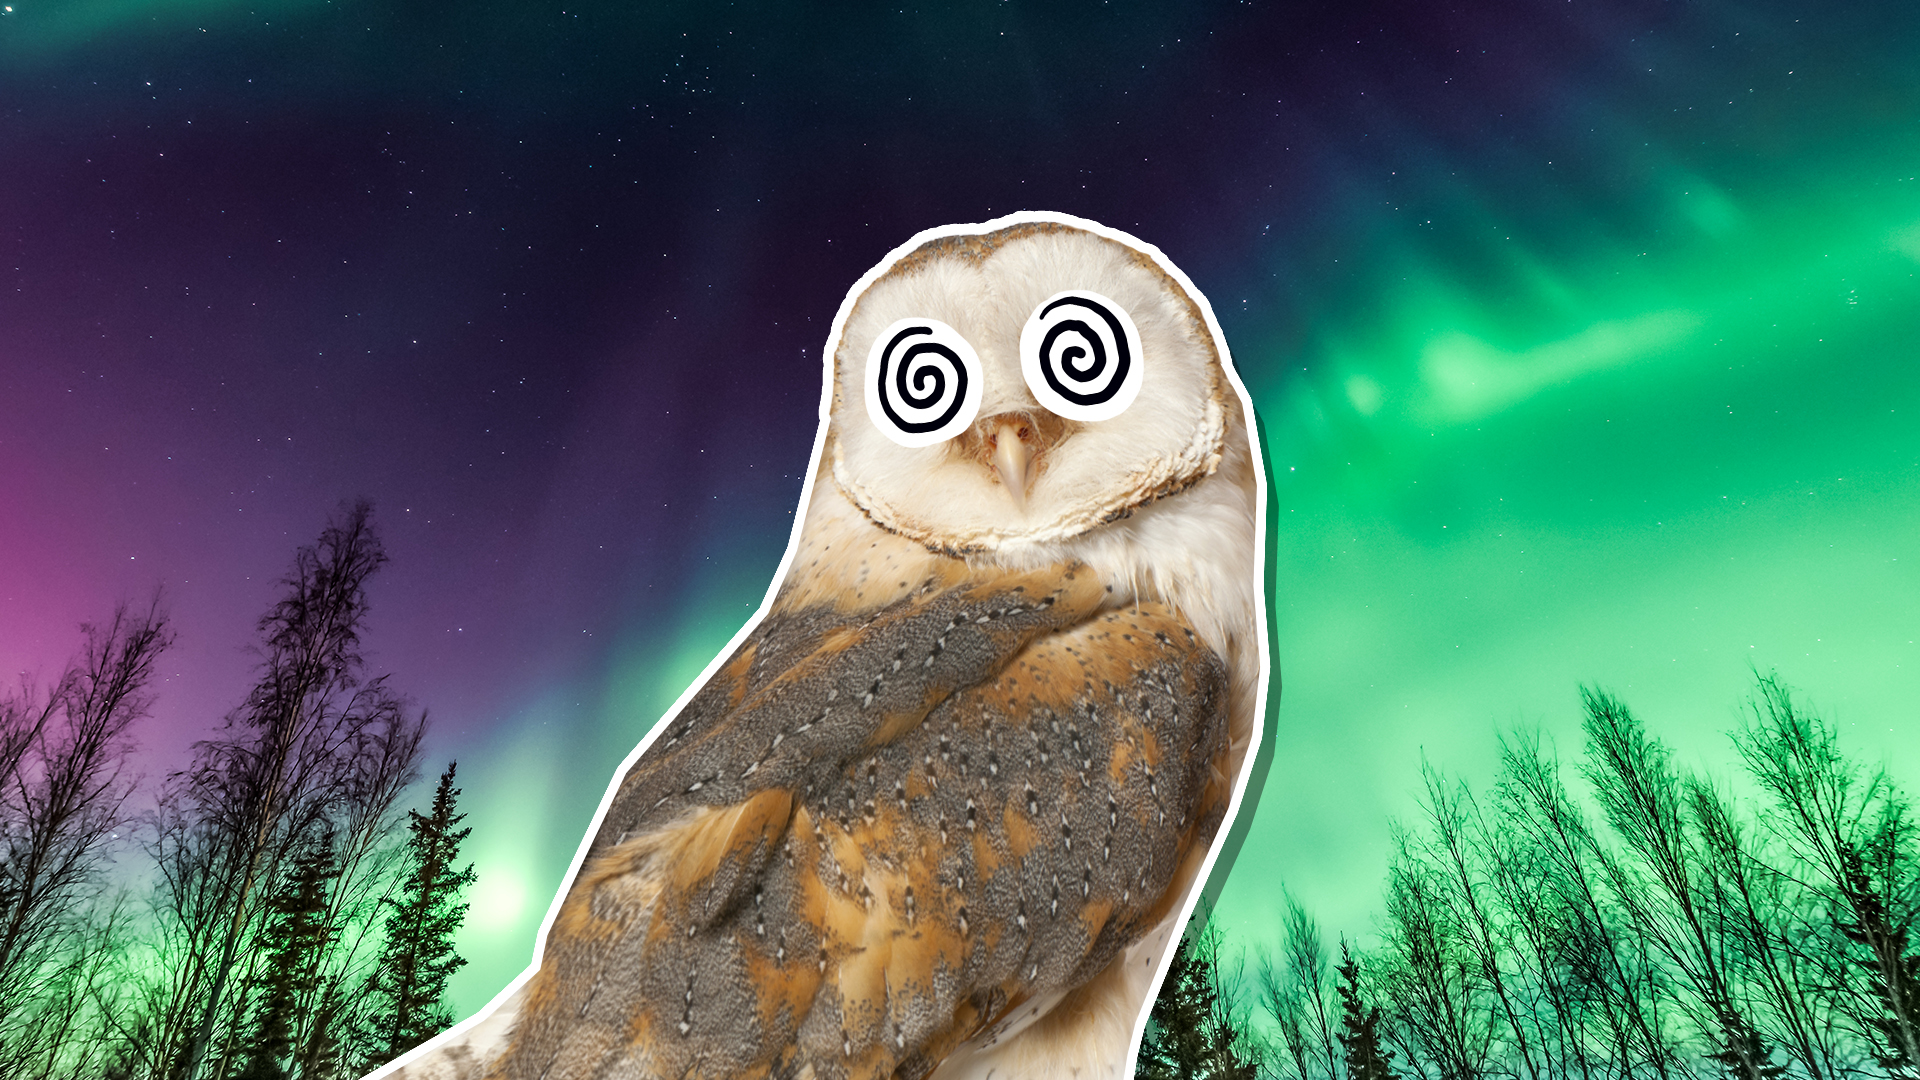 An owl against the Northern Lights